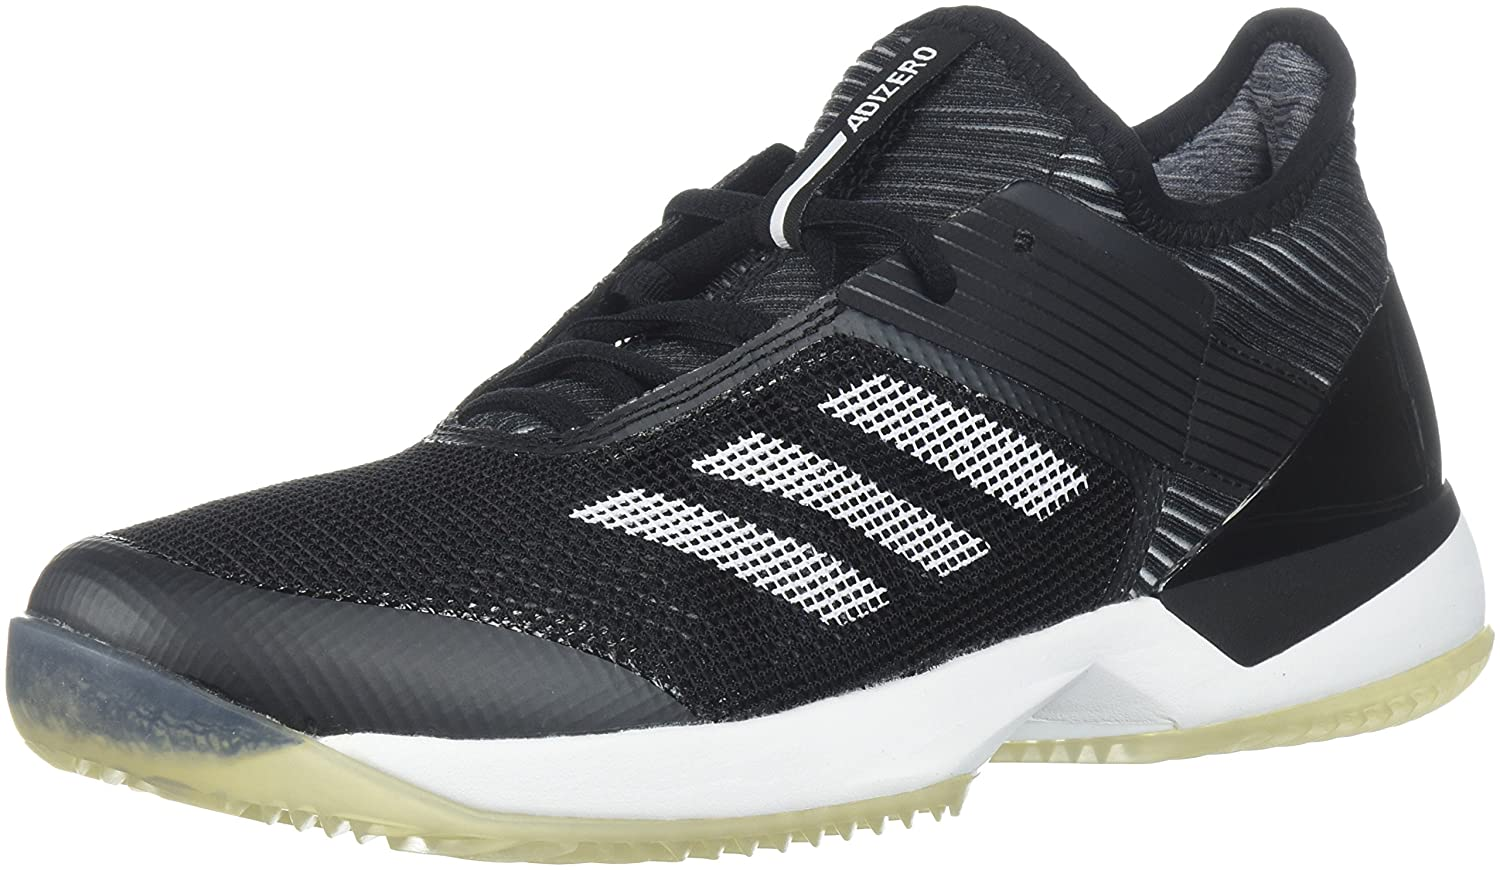 adidas Women's Adizero Ubersonic 3 w Clay Tennis Shoe B072FGYB6L 9 B(M) US|Core Black/White/Core Black